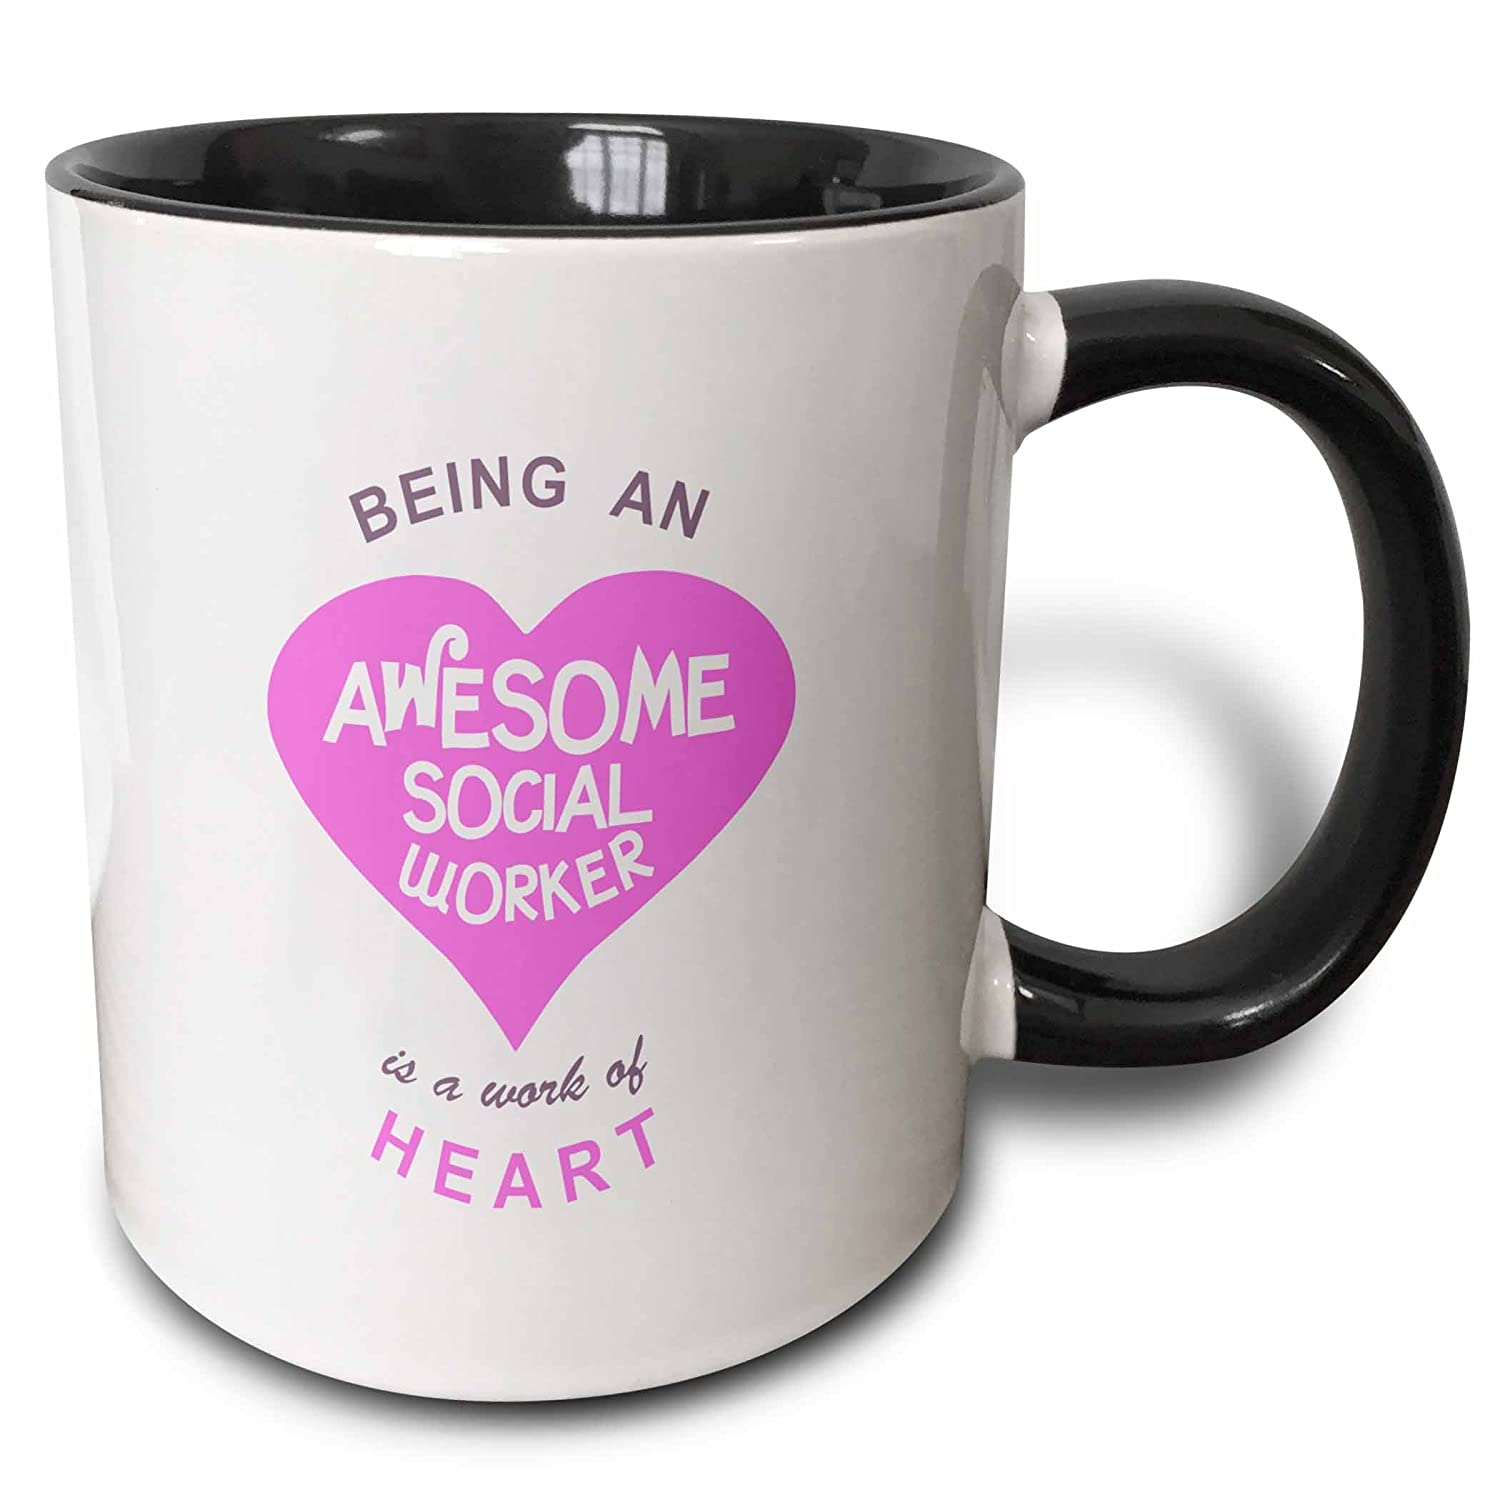 3dRose Being an Awesome Social Worker is a work of Heart - pink - job quote - Two Tone Black Mug, 11oz (mug_183884_4), 11 oz, Black/White 3EROS